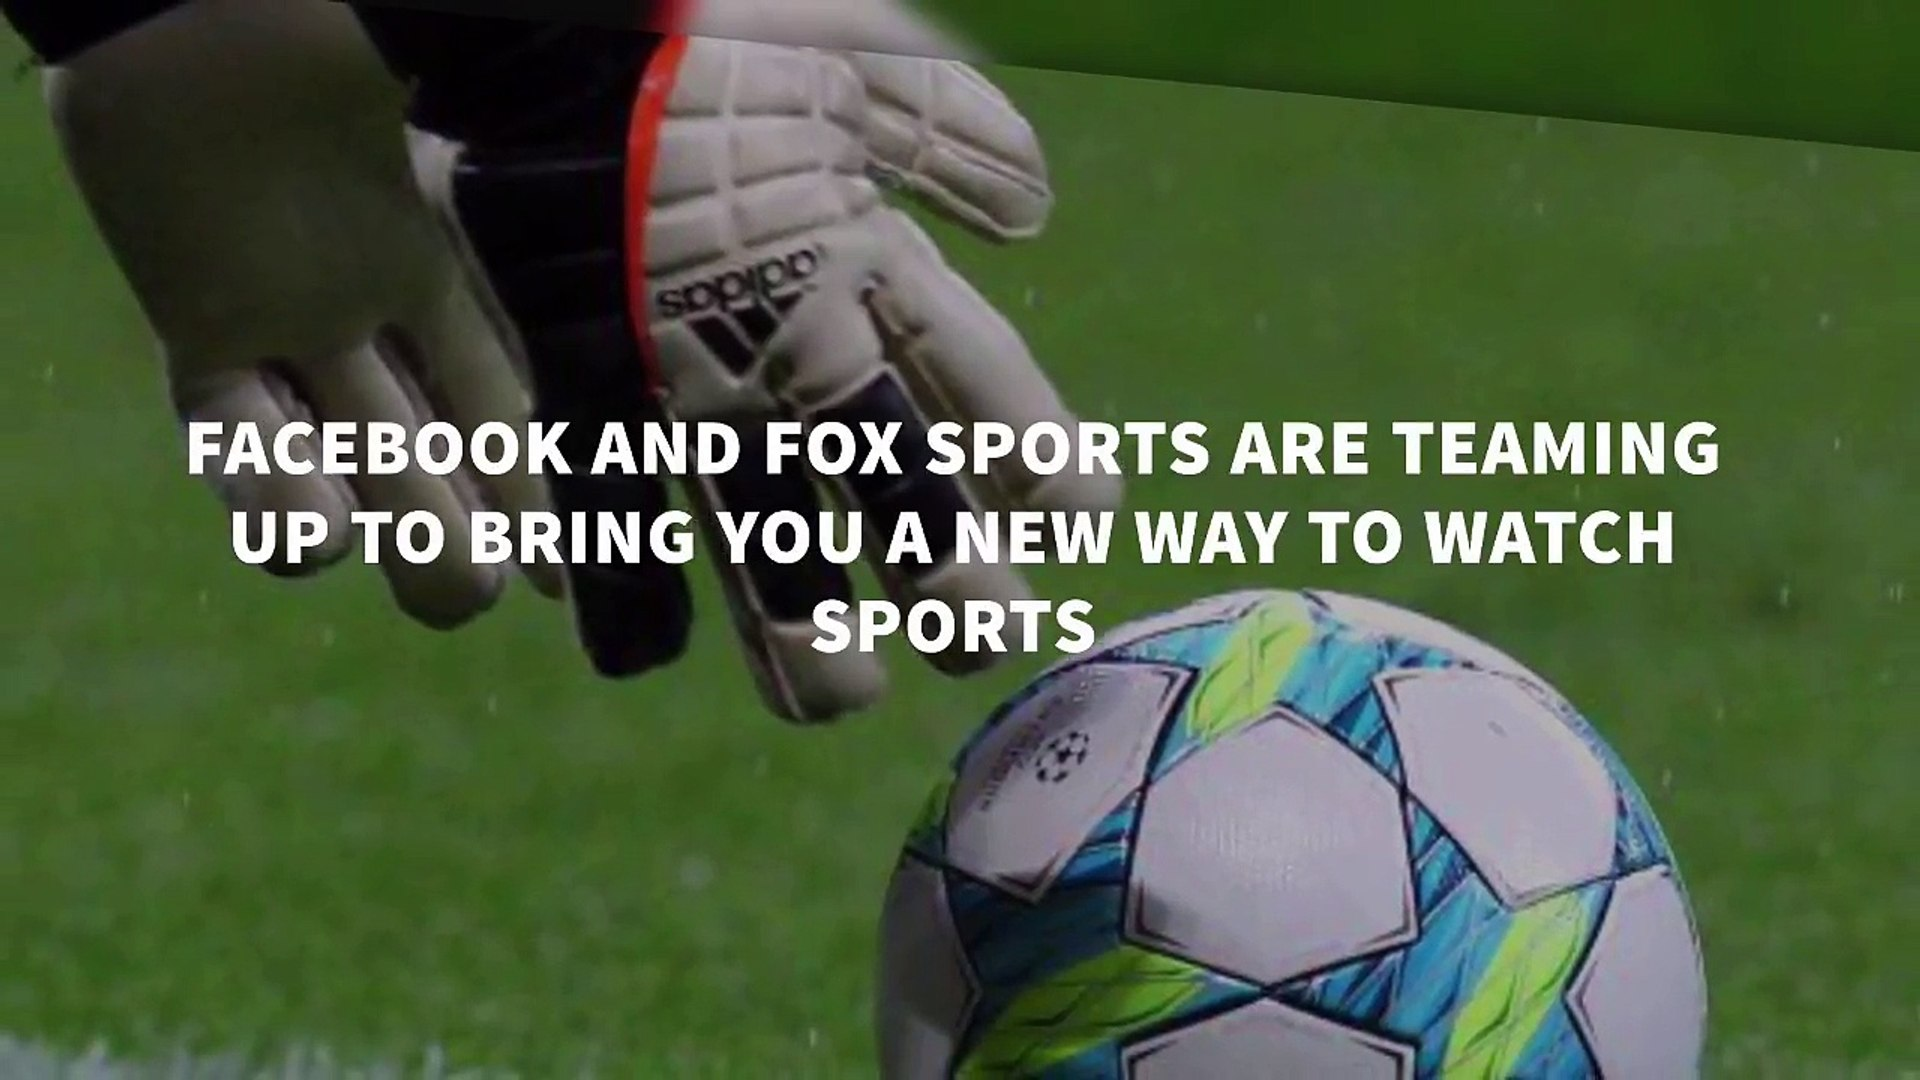 Facebook and Fox Sports Are Teaming Up to Bring You a New Way to Watch Sports